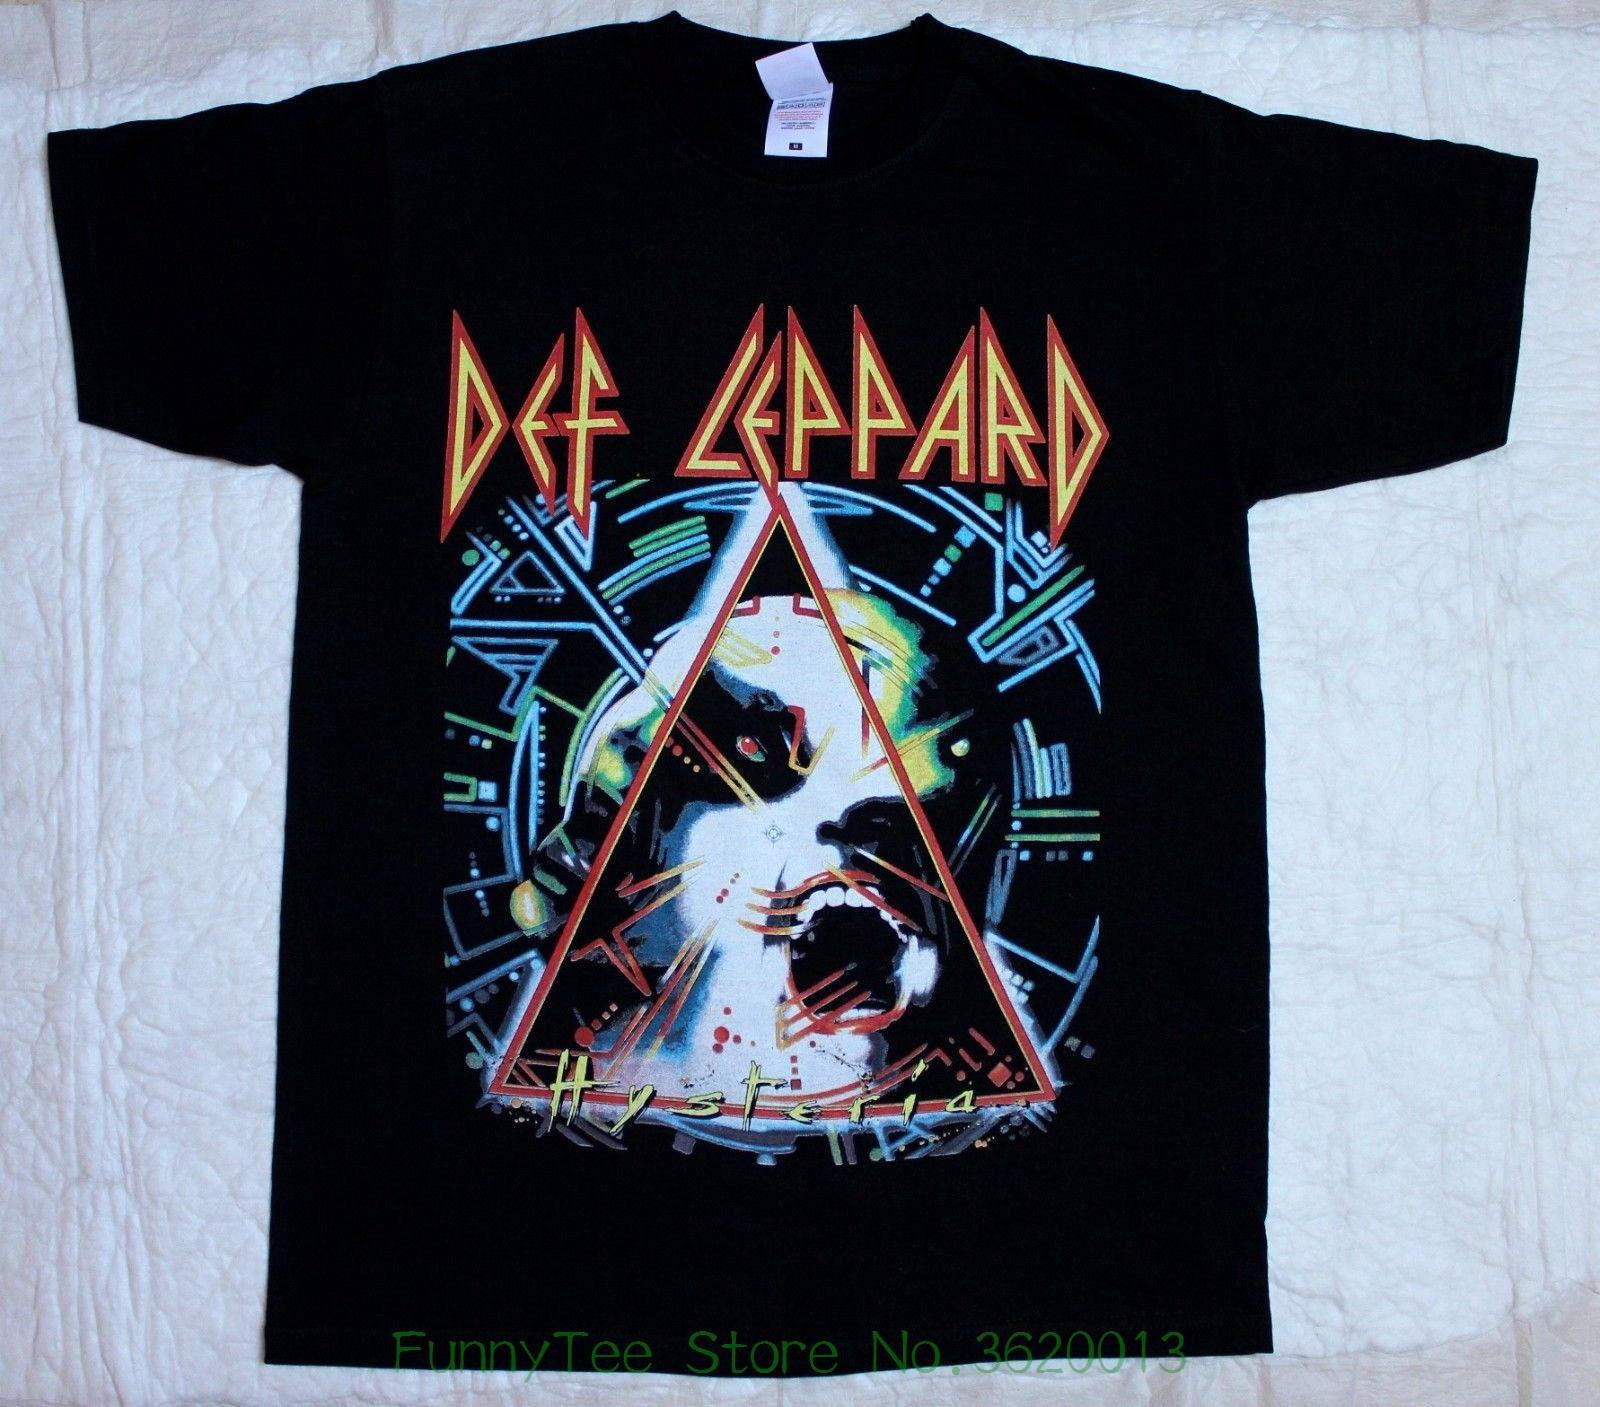 6599ed06c794f Def Leppard Hysteria Tour     88 Black T Shirt Witty Tee Shirts Tee Shirt  Funny From Funnyteestore